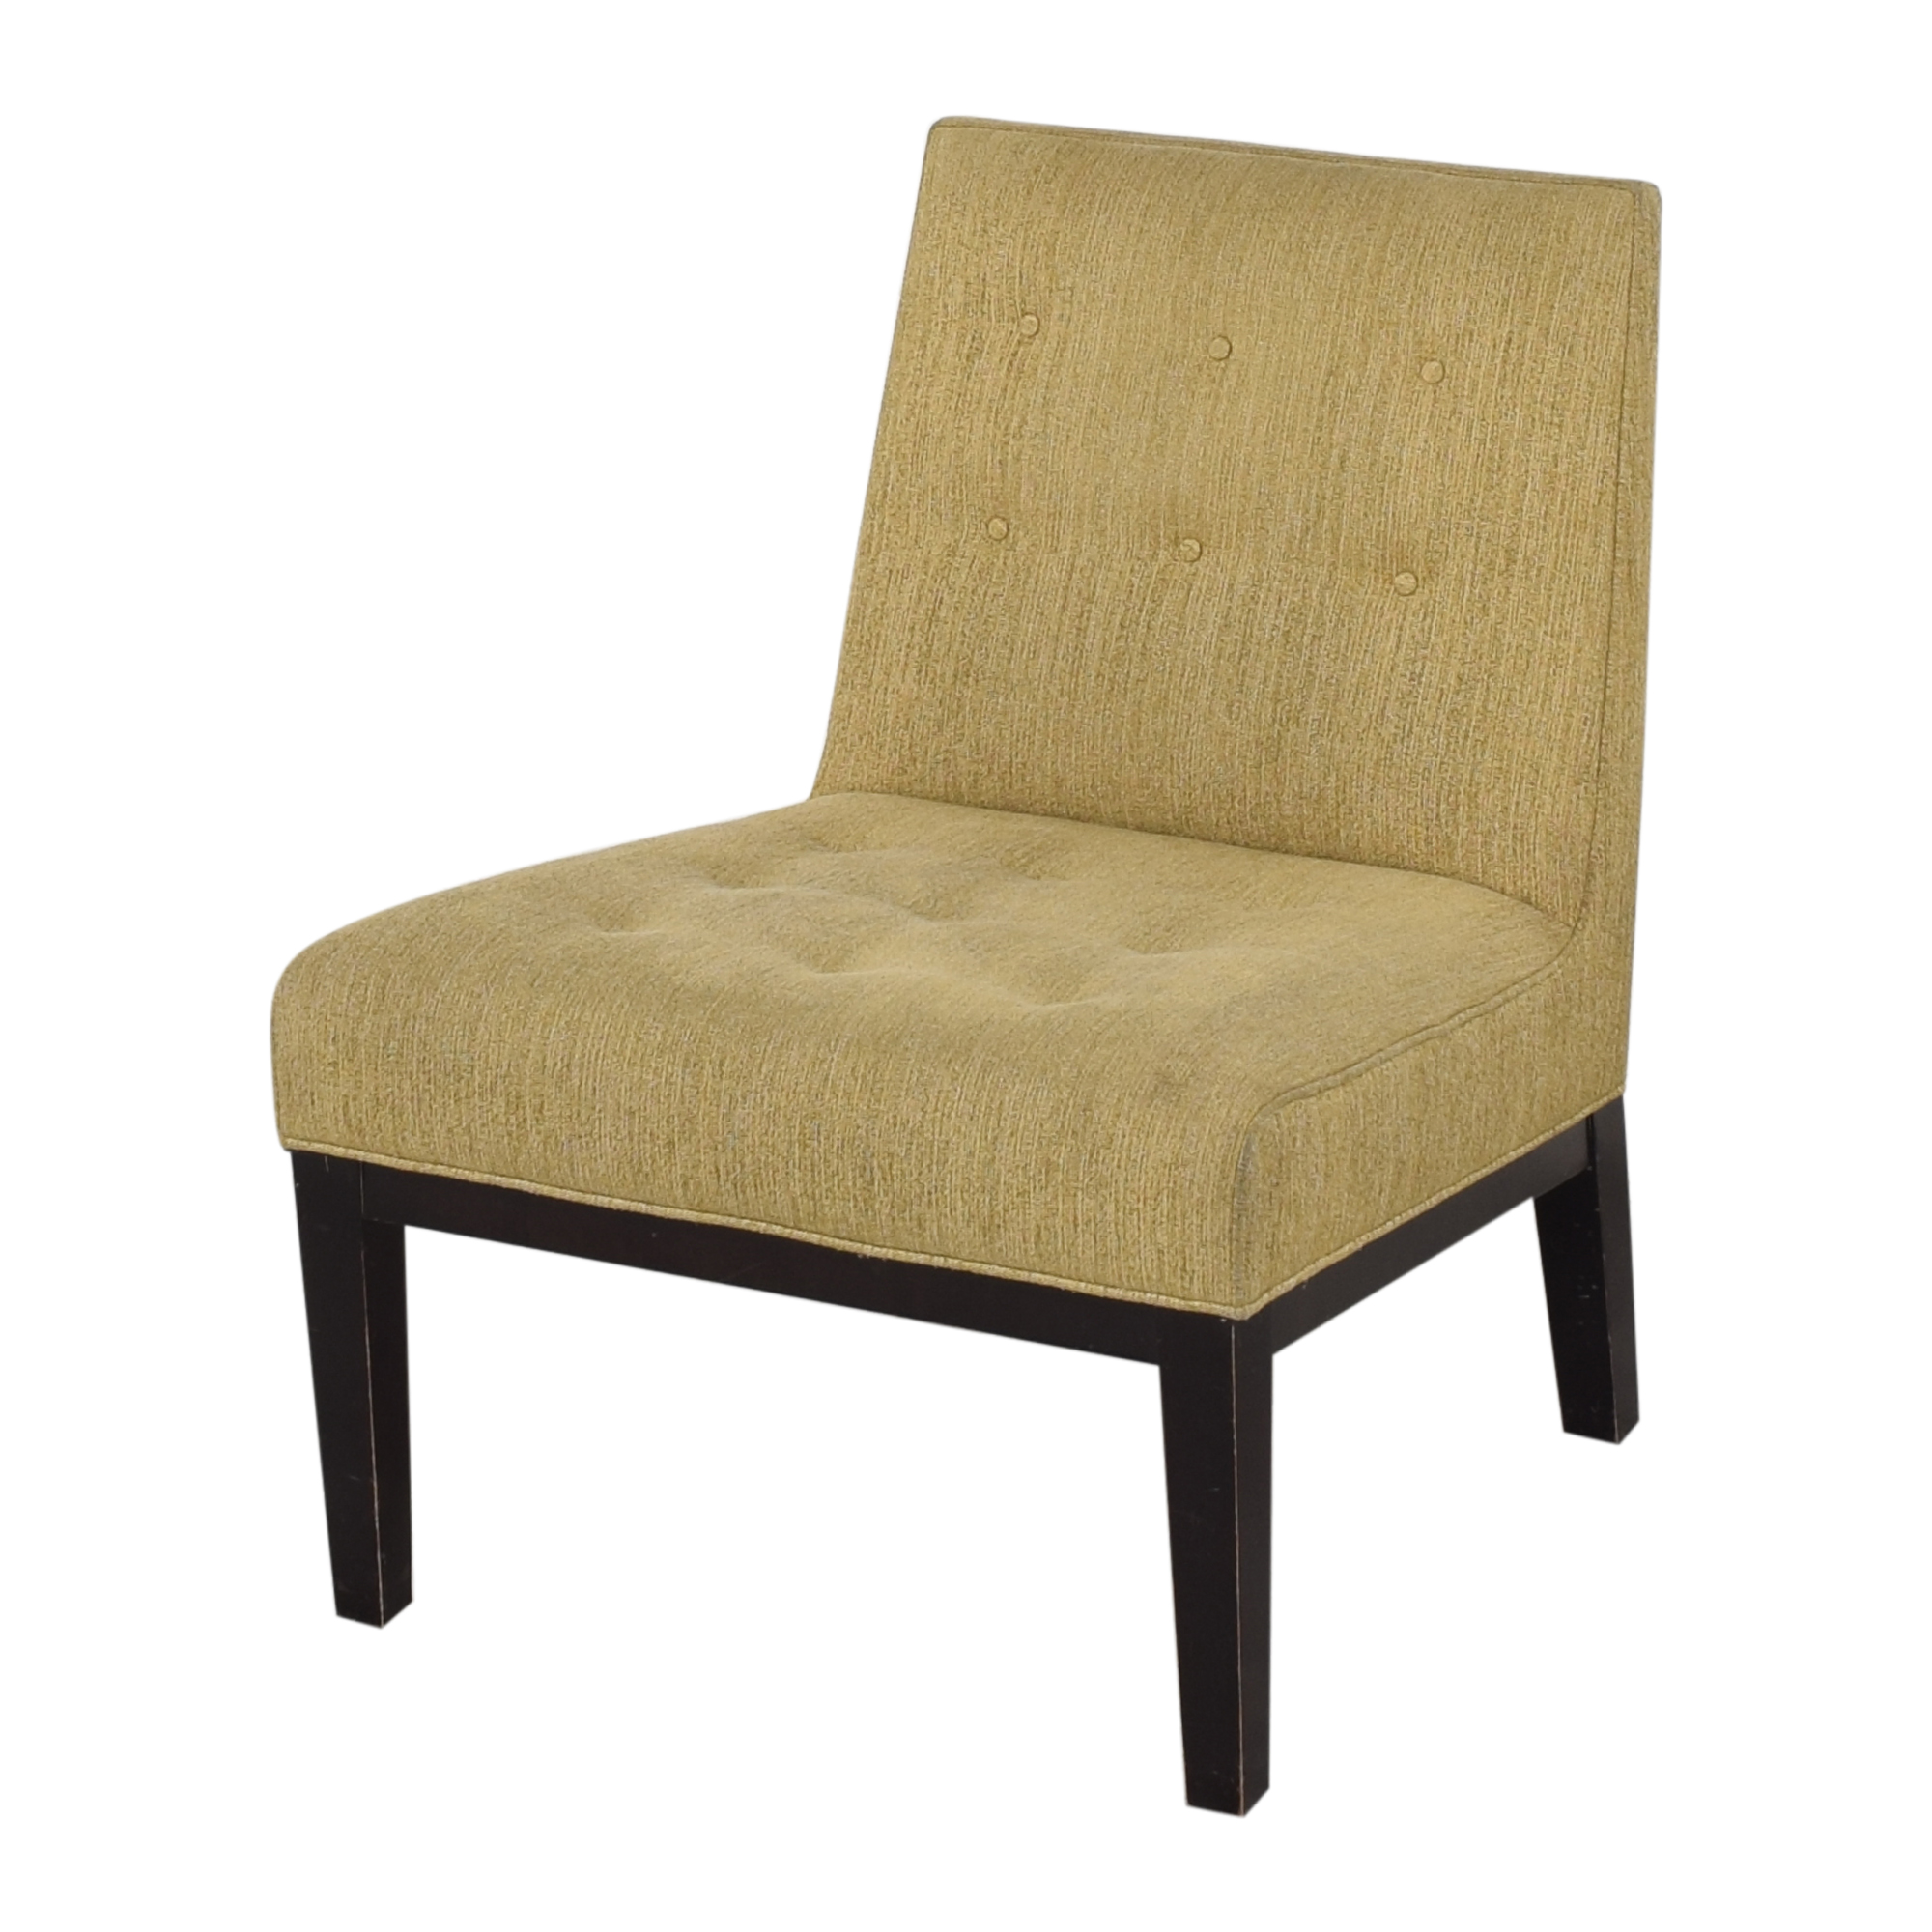 Room & Board Room & Board Tufted Slipper Chair discount